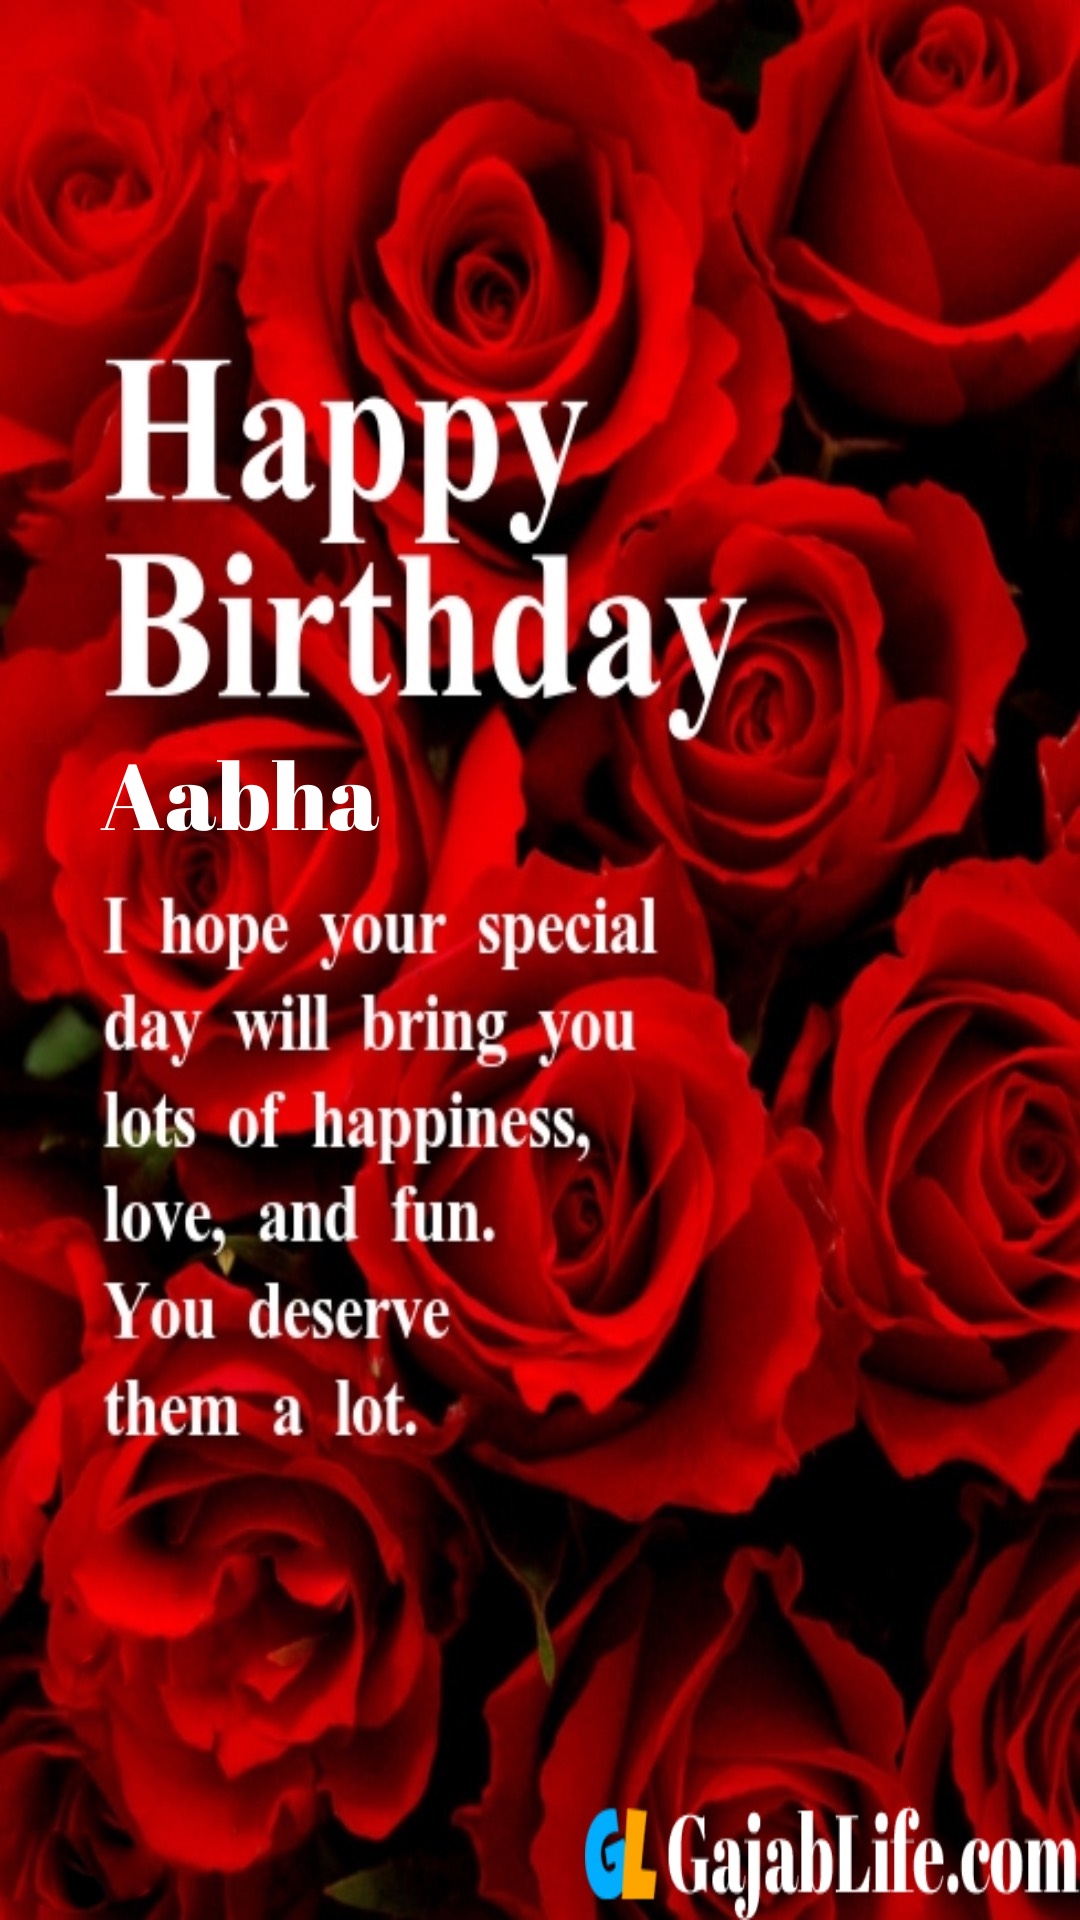 Aabha birthday greeting card with rose & love